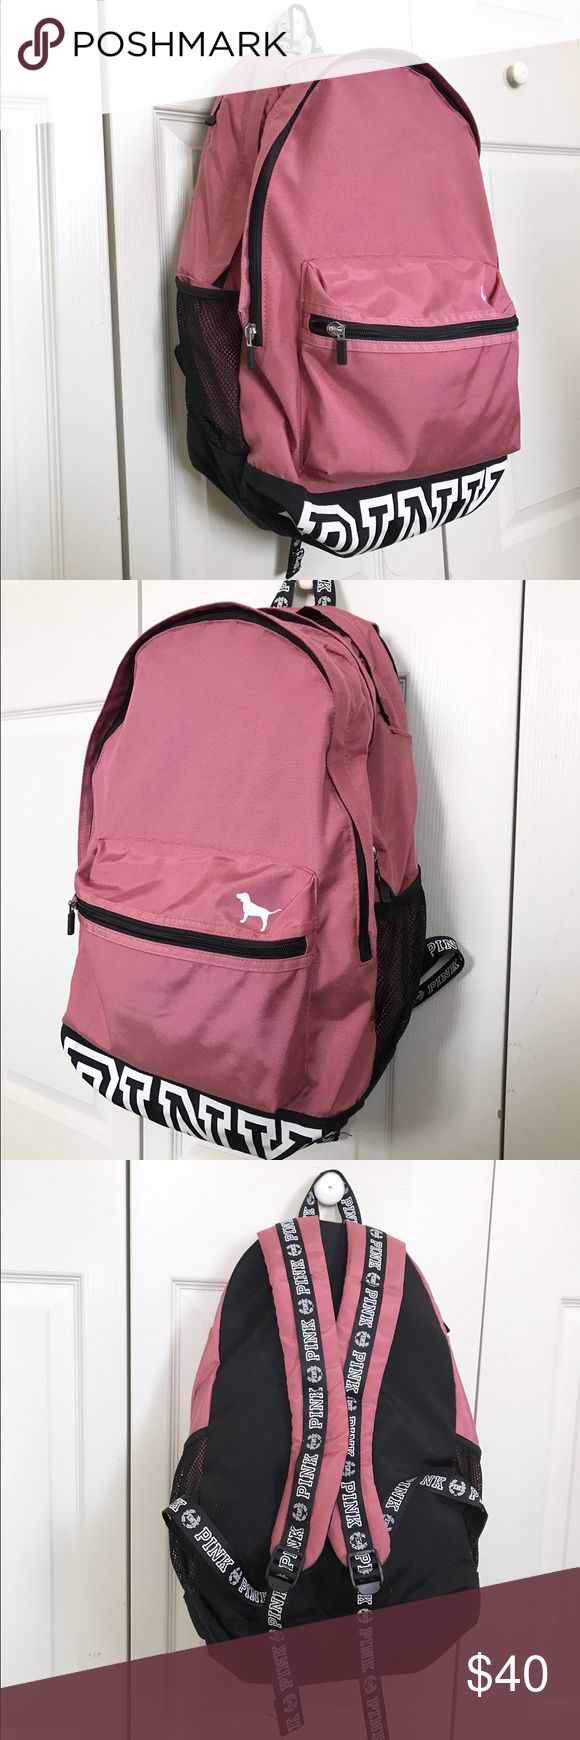 "Pink Backpack Pink Backpack, only used 3 months for school. Great campus backpack. Has 3 compartments, laptop sleeve big enough for a 15"" MacBook, cupholders on each side, and adjustable padded straps. PINK Victoria's Secret Bags Backpacks"